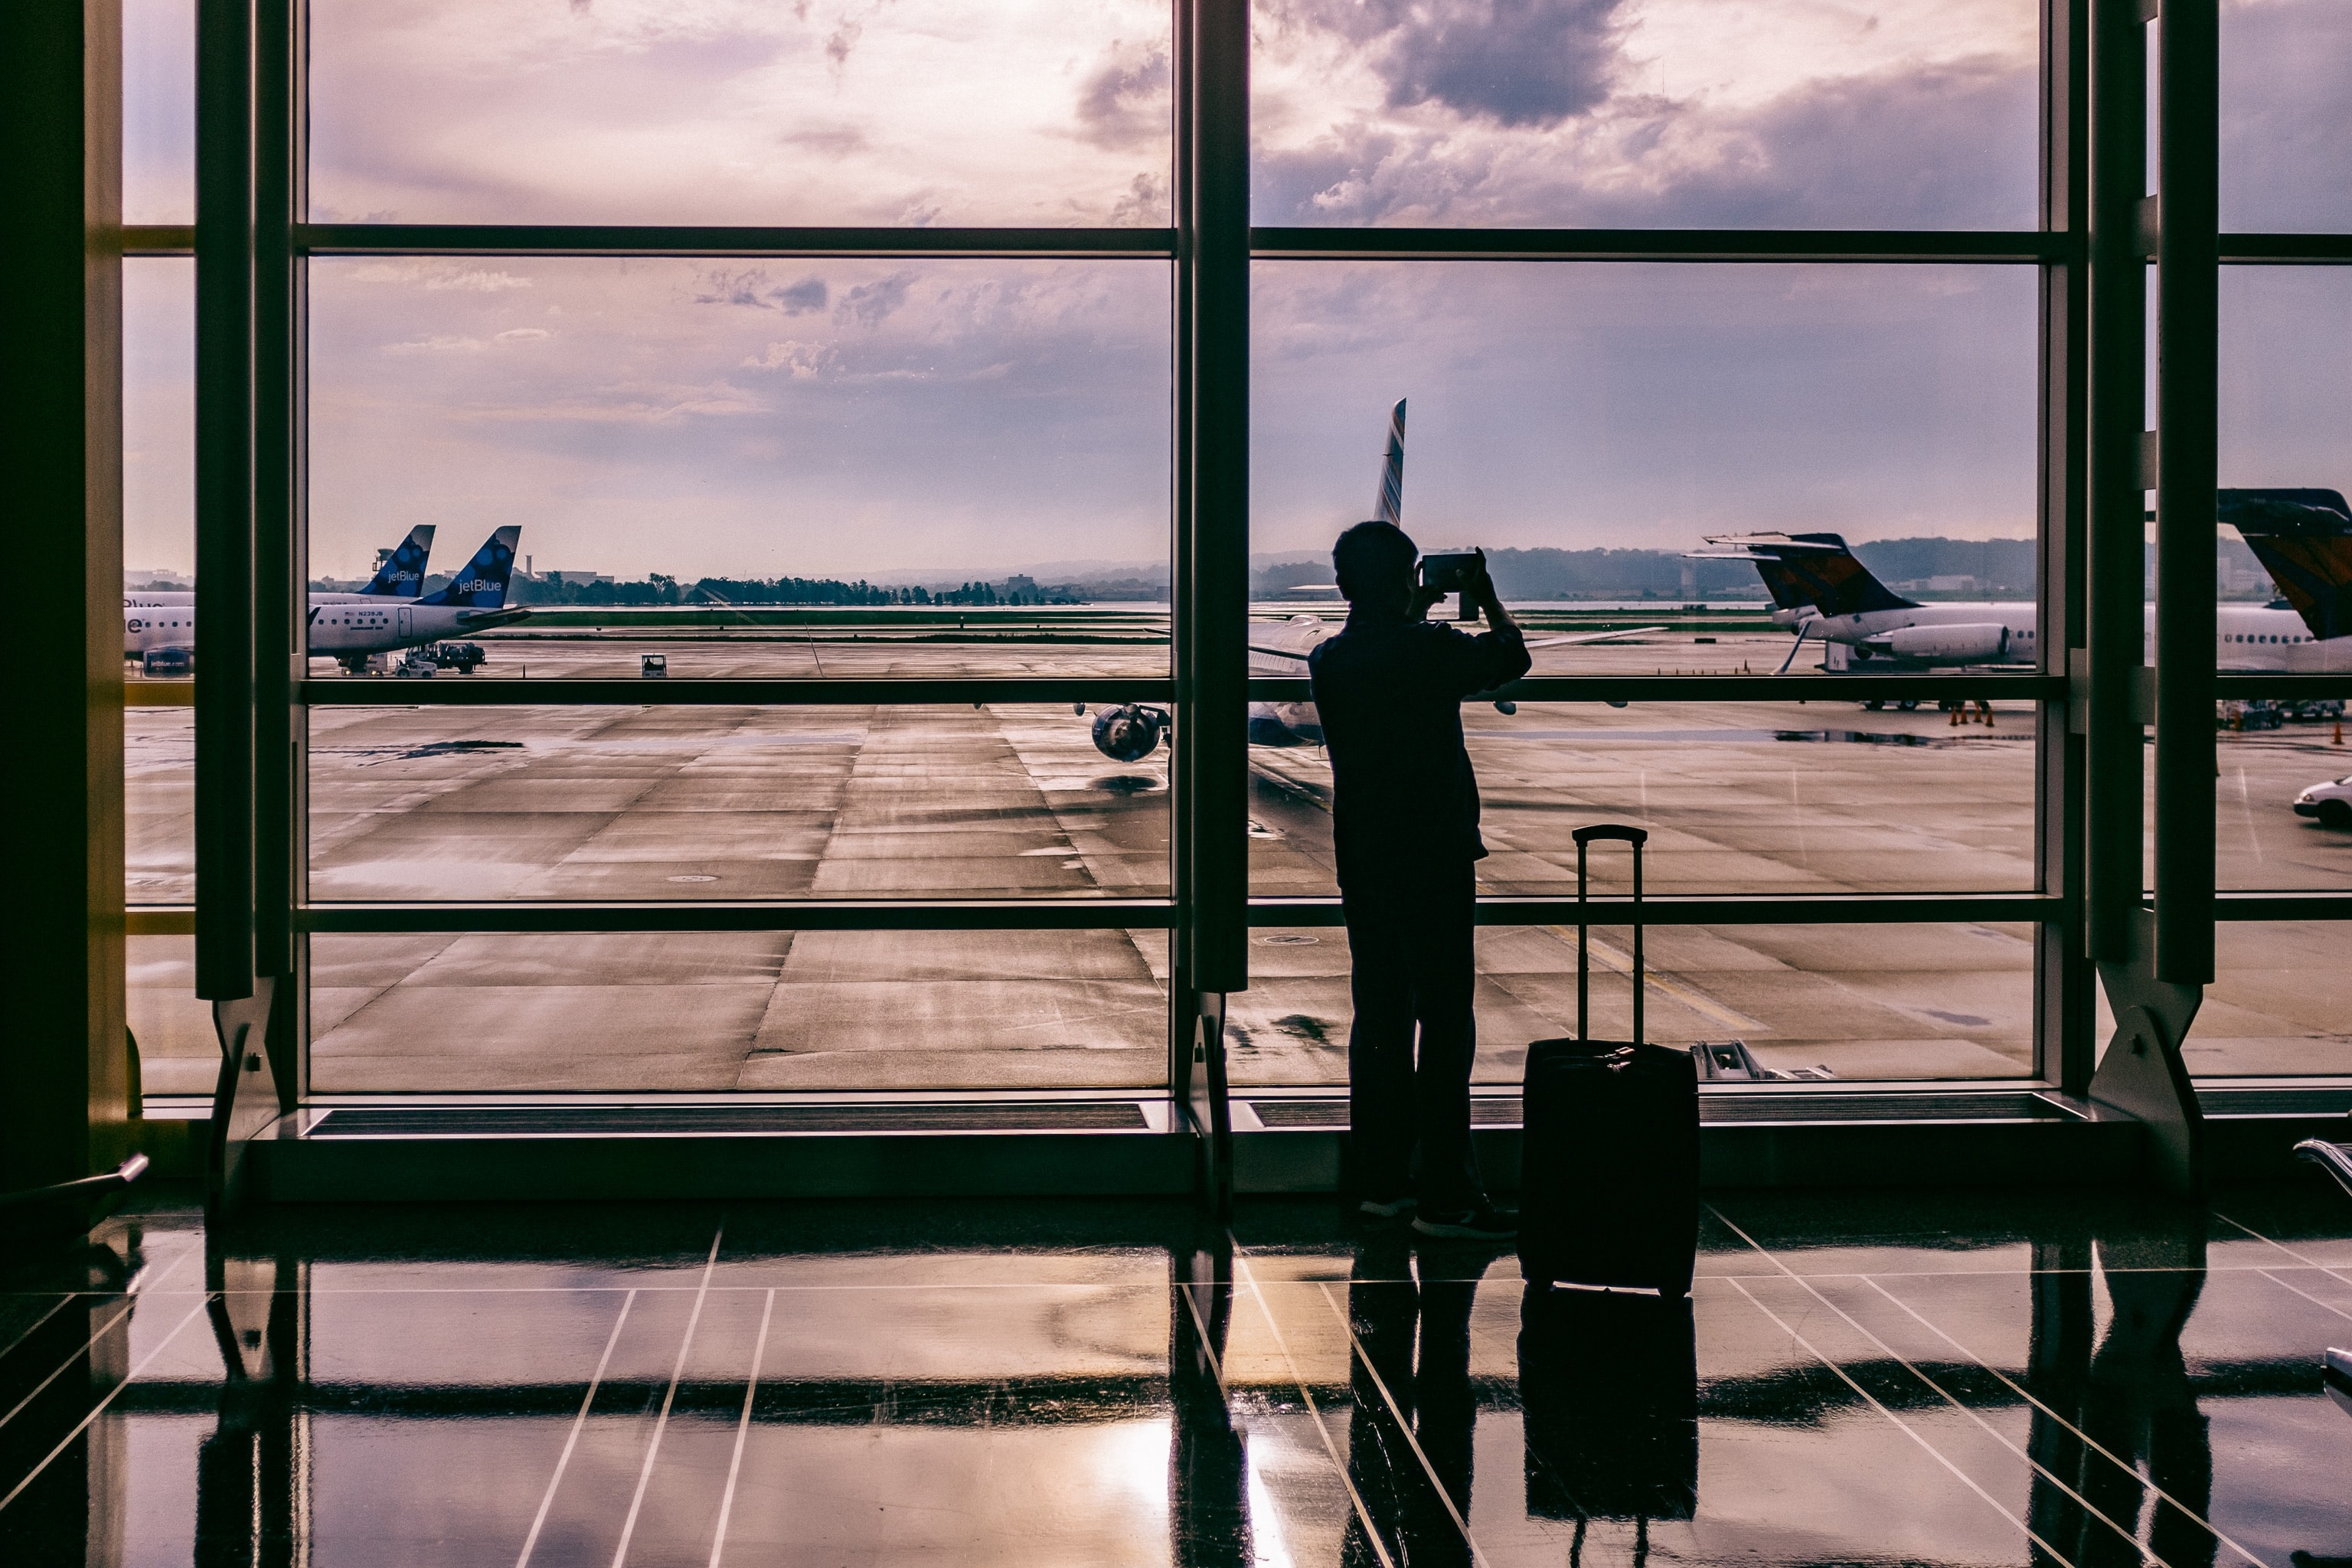 A silhouette of a man taking photos at the floor-to-ceiling window in an airport